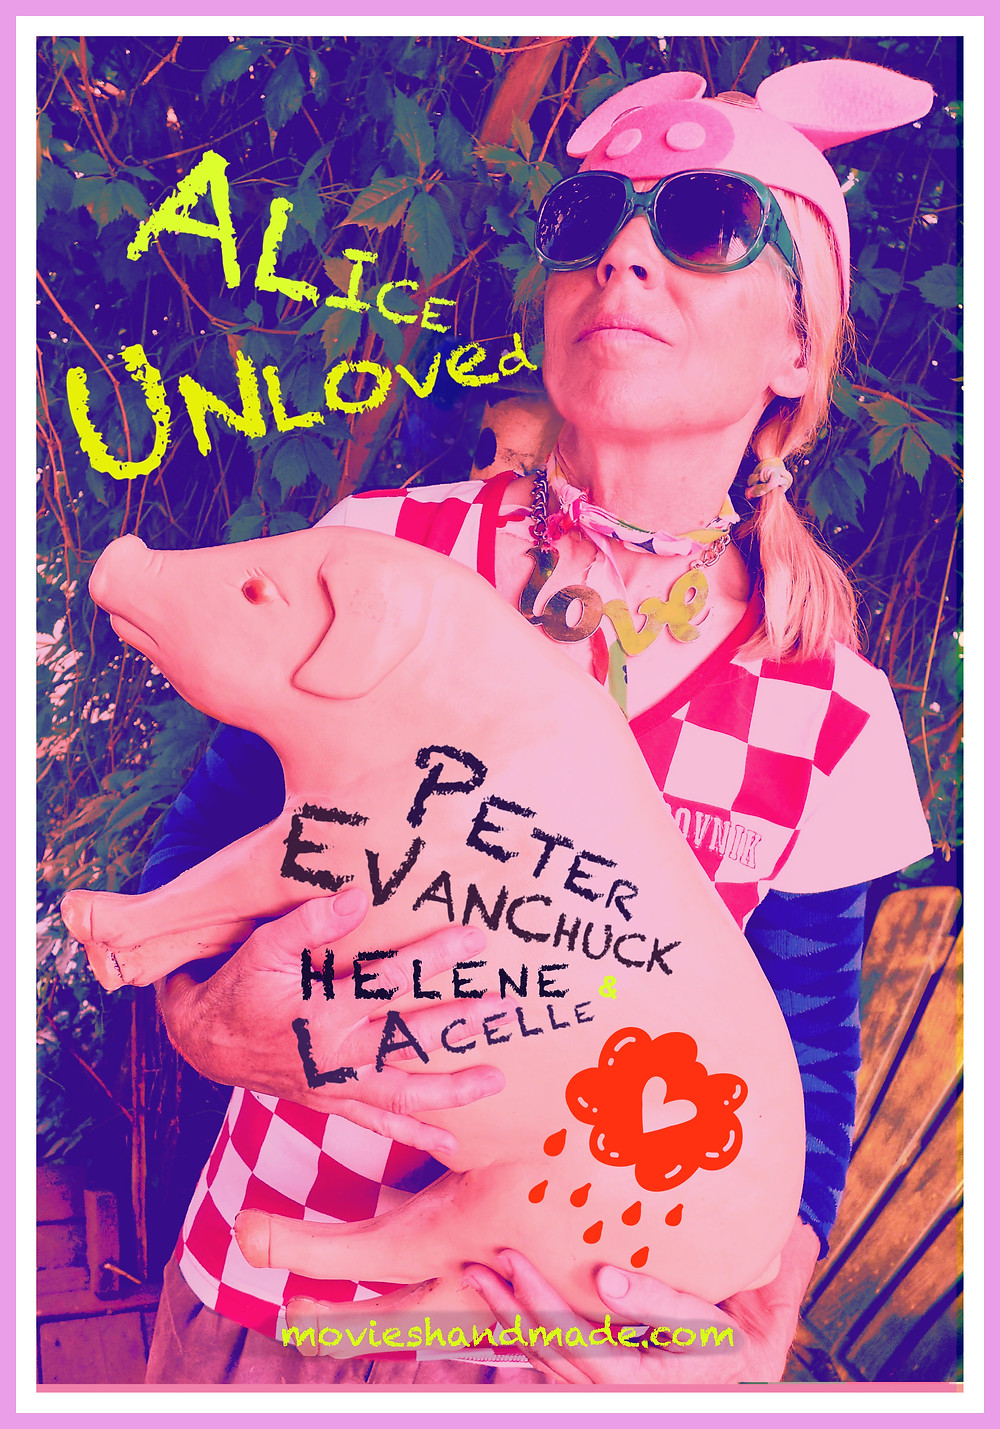 ALICE UNLOVED a new fantasy movie by Peter Evanchuck